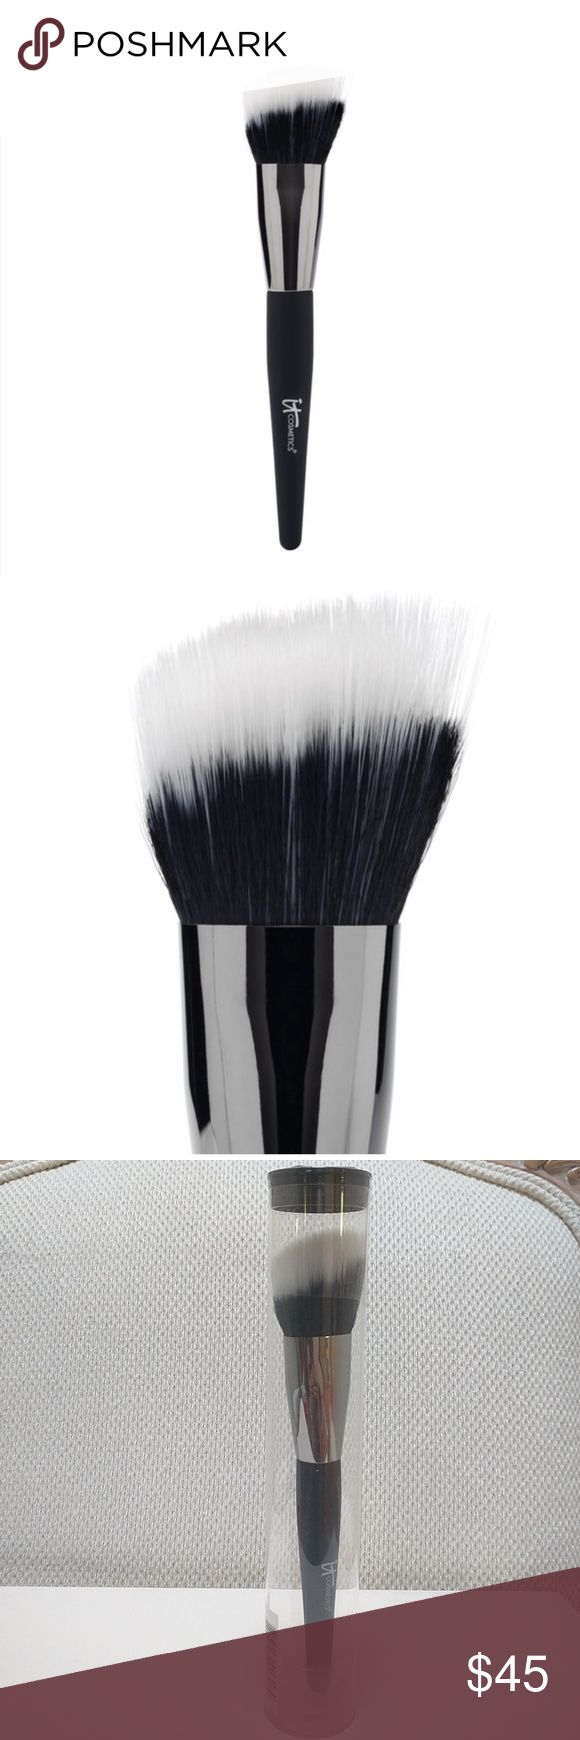 It Cosmetics Angled Radiance Creme Duo Fibre Brush Brush is new and still in sealed packaging.  No trades.  Please submit any offers via the offer option. Sephora Makeup Brushes & Tools